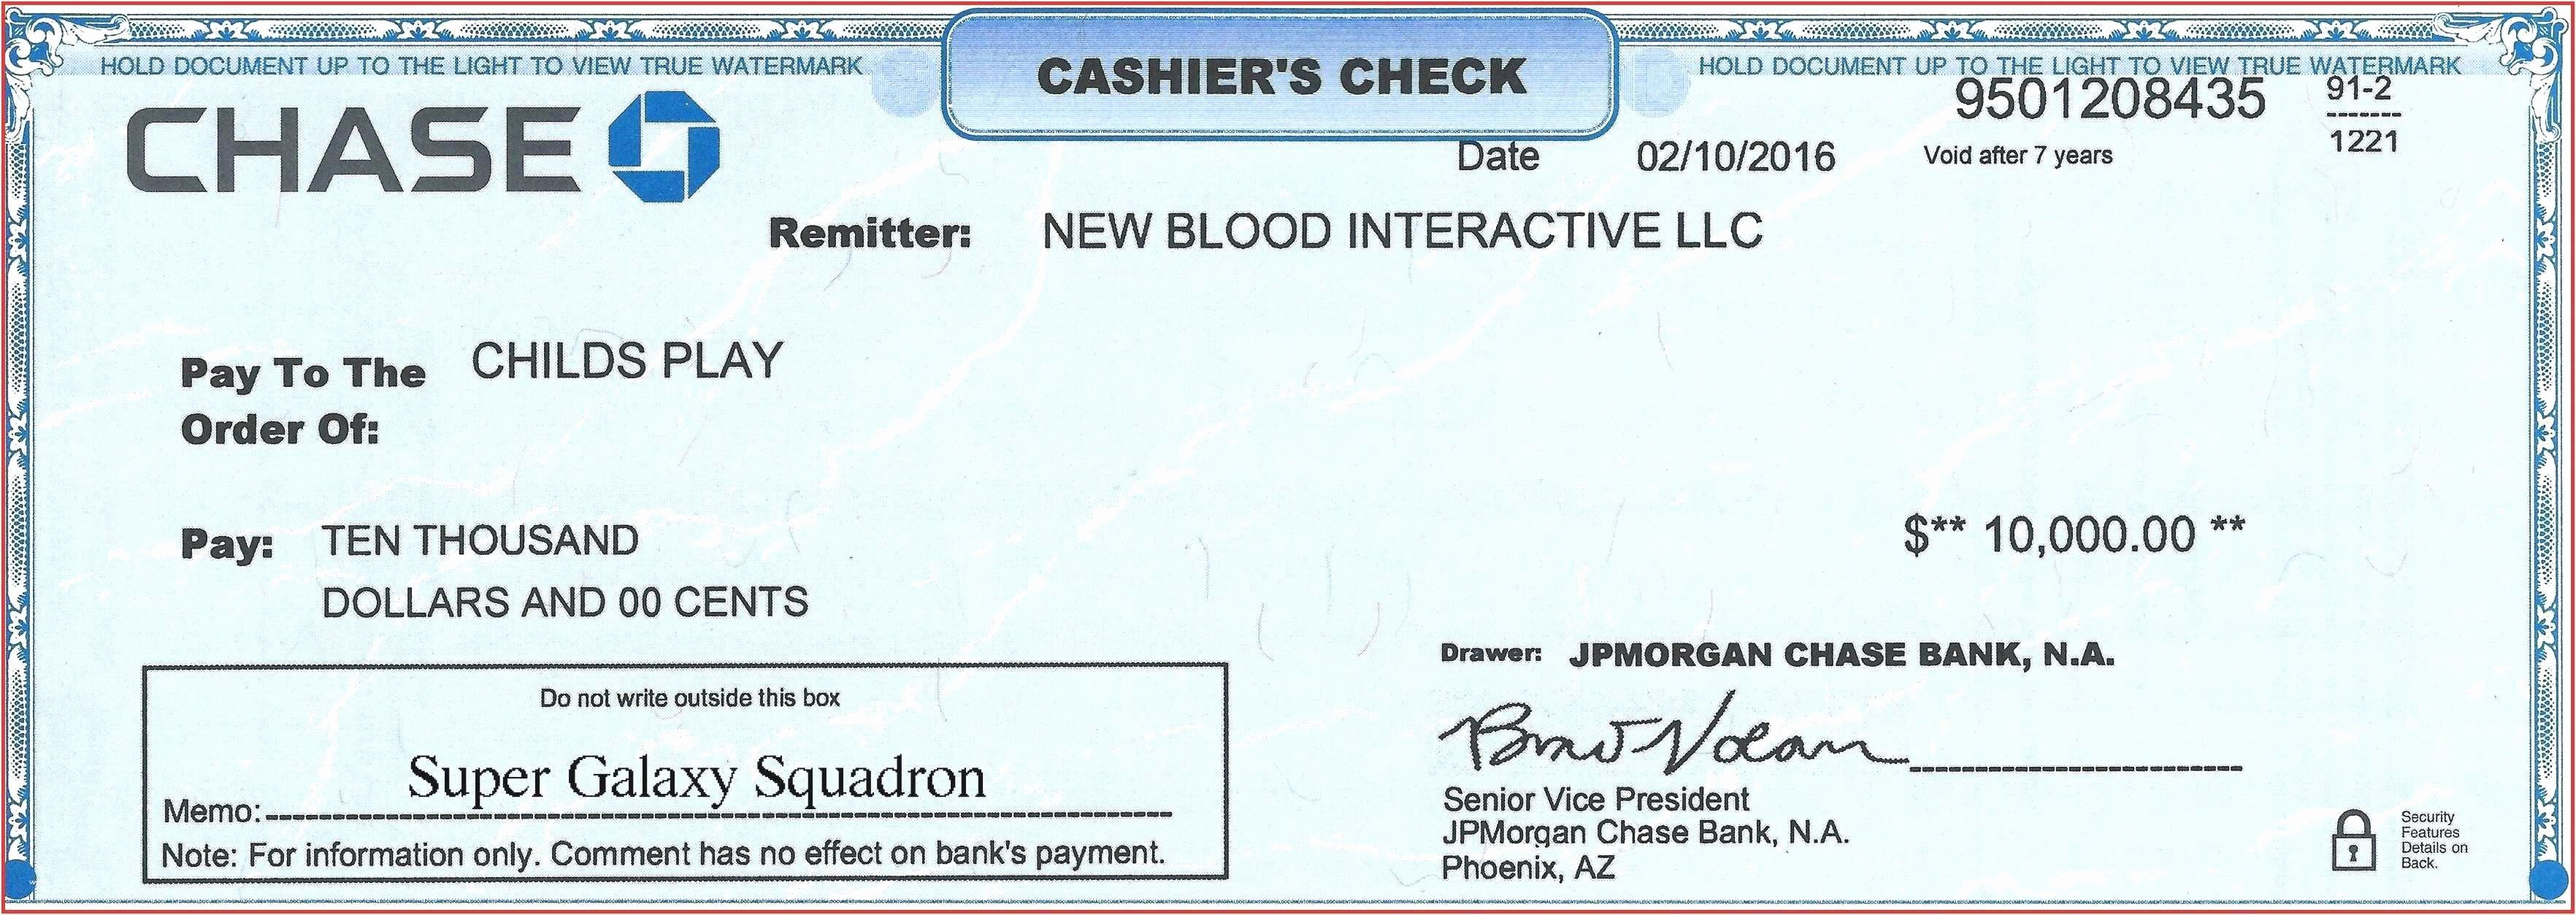 Chase Check Template Lovely Cashier Check Template Editable Blank Cashiers Pdf Chase